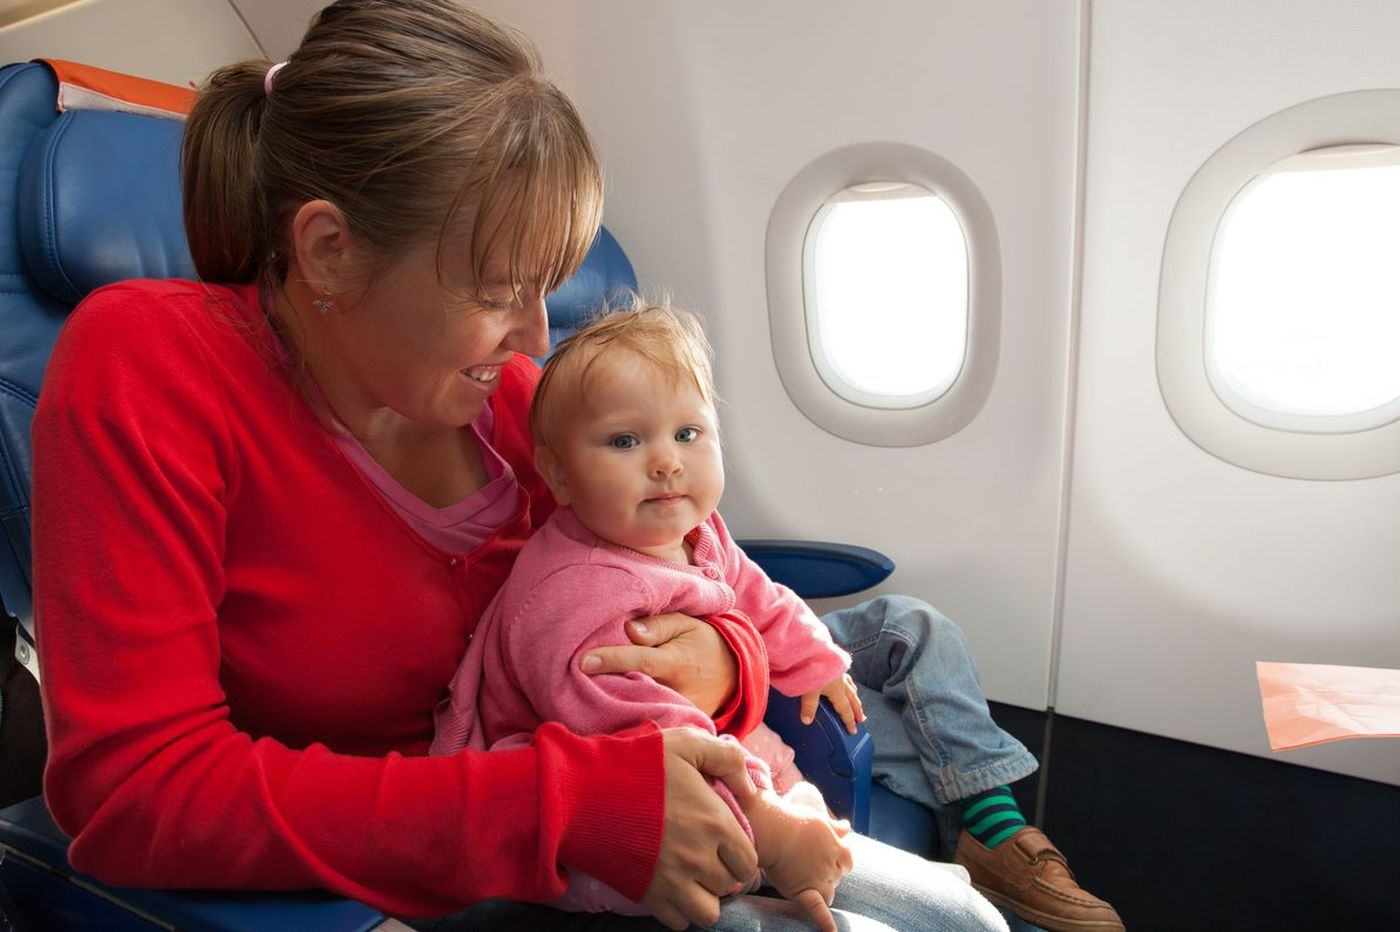 After Southwest incident, should child safety seats be required on airplanes?